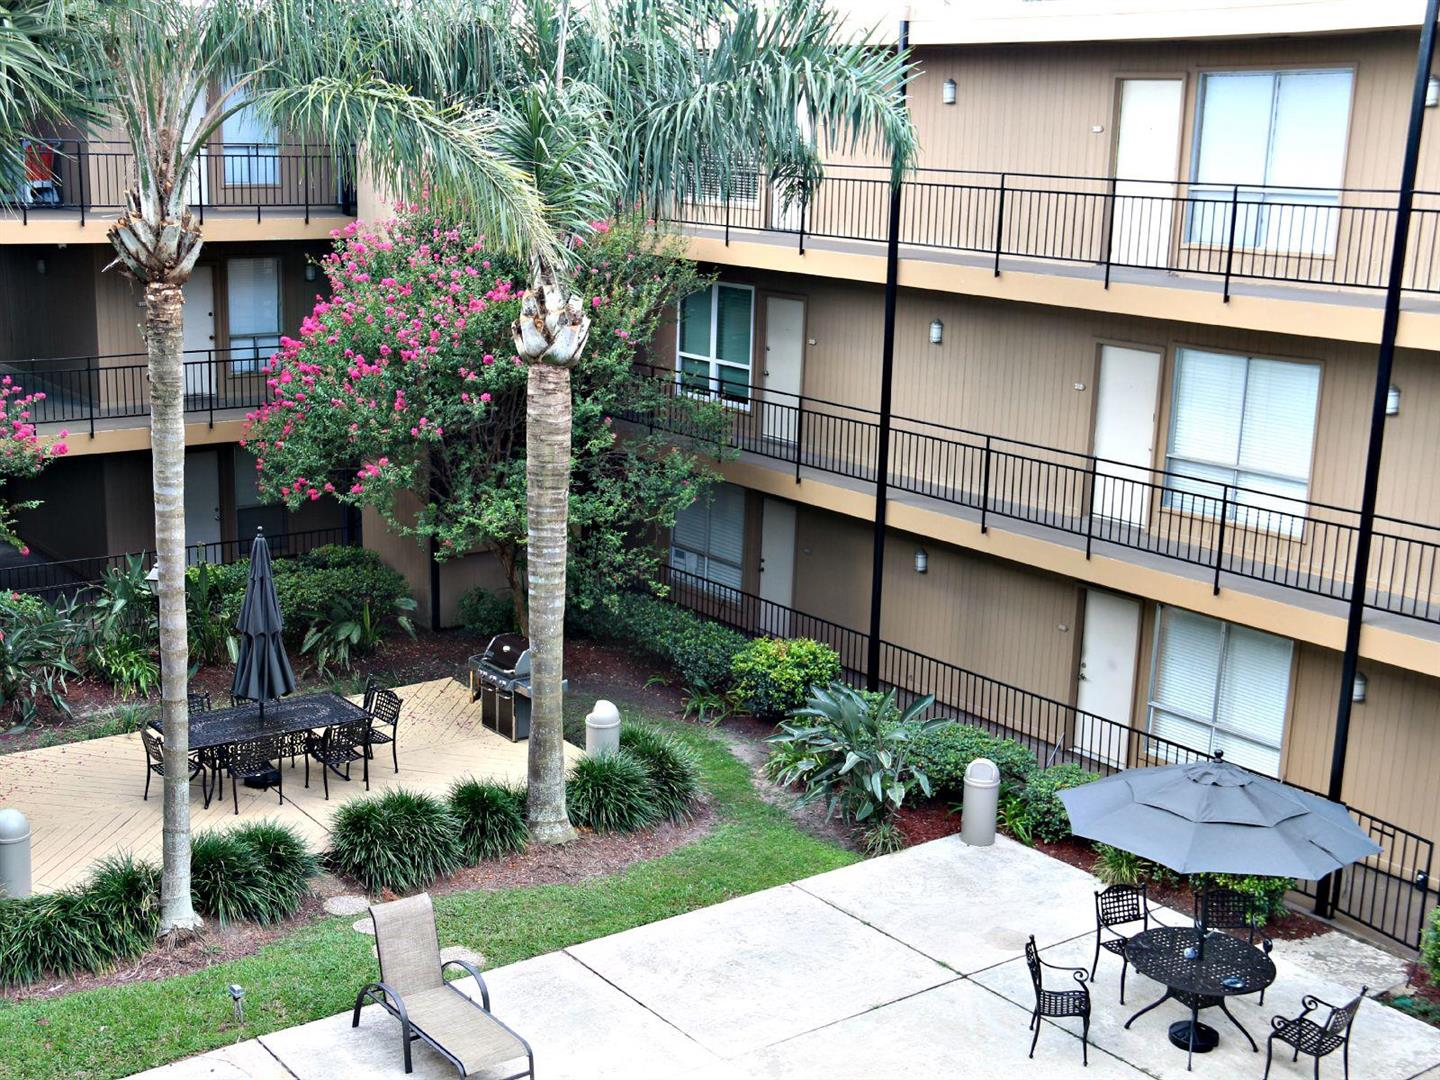 318LakeMarinaCondos,Courtyard.jpg